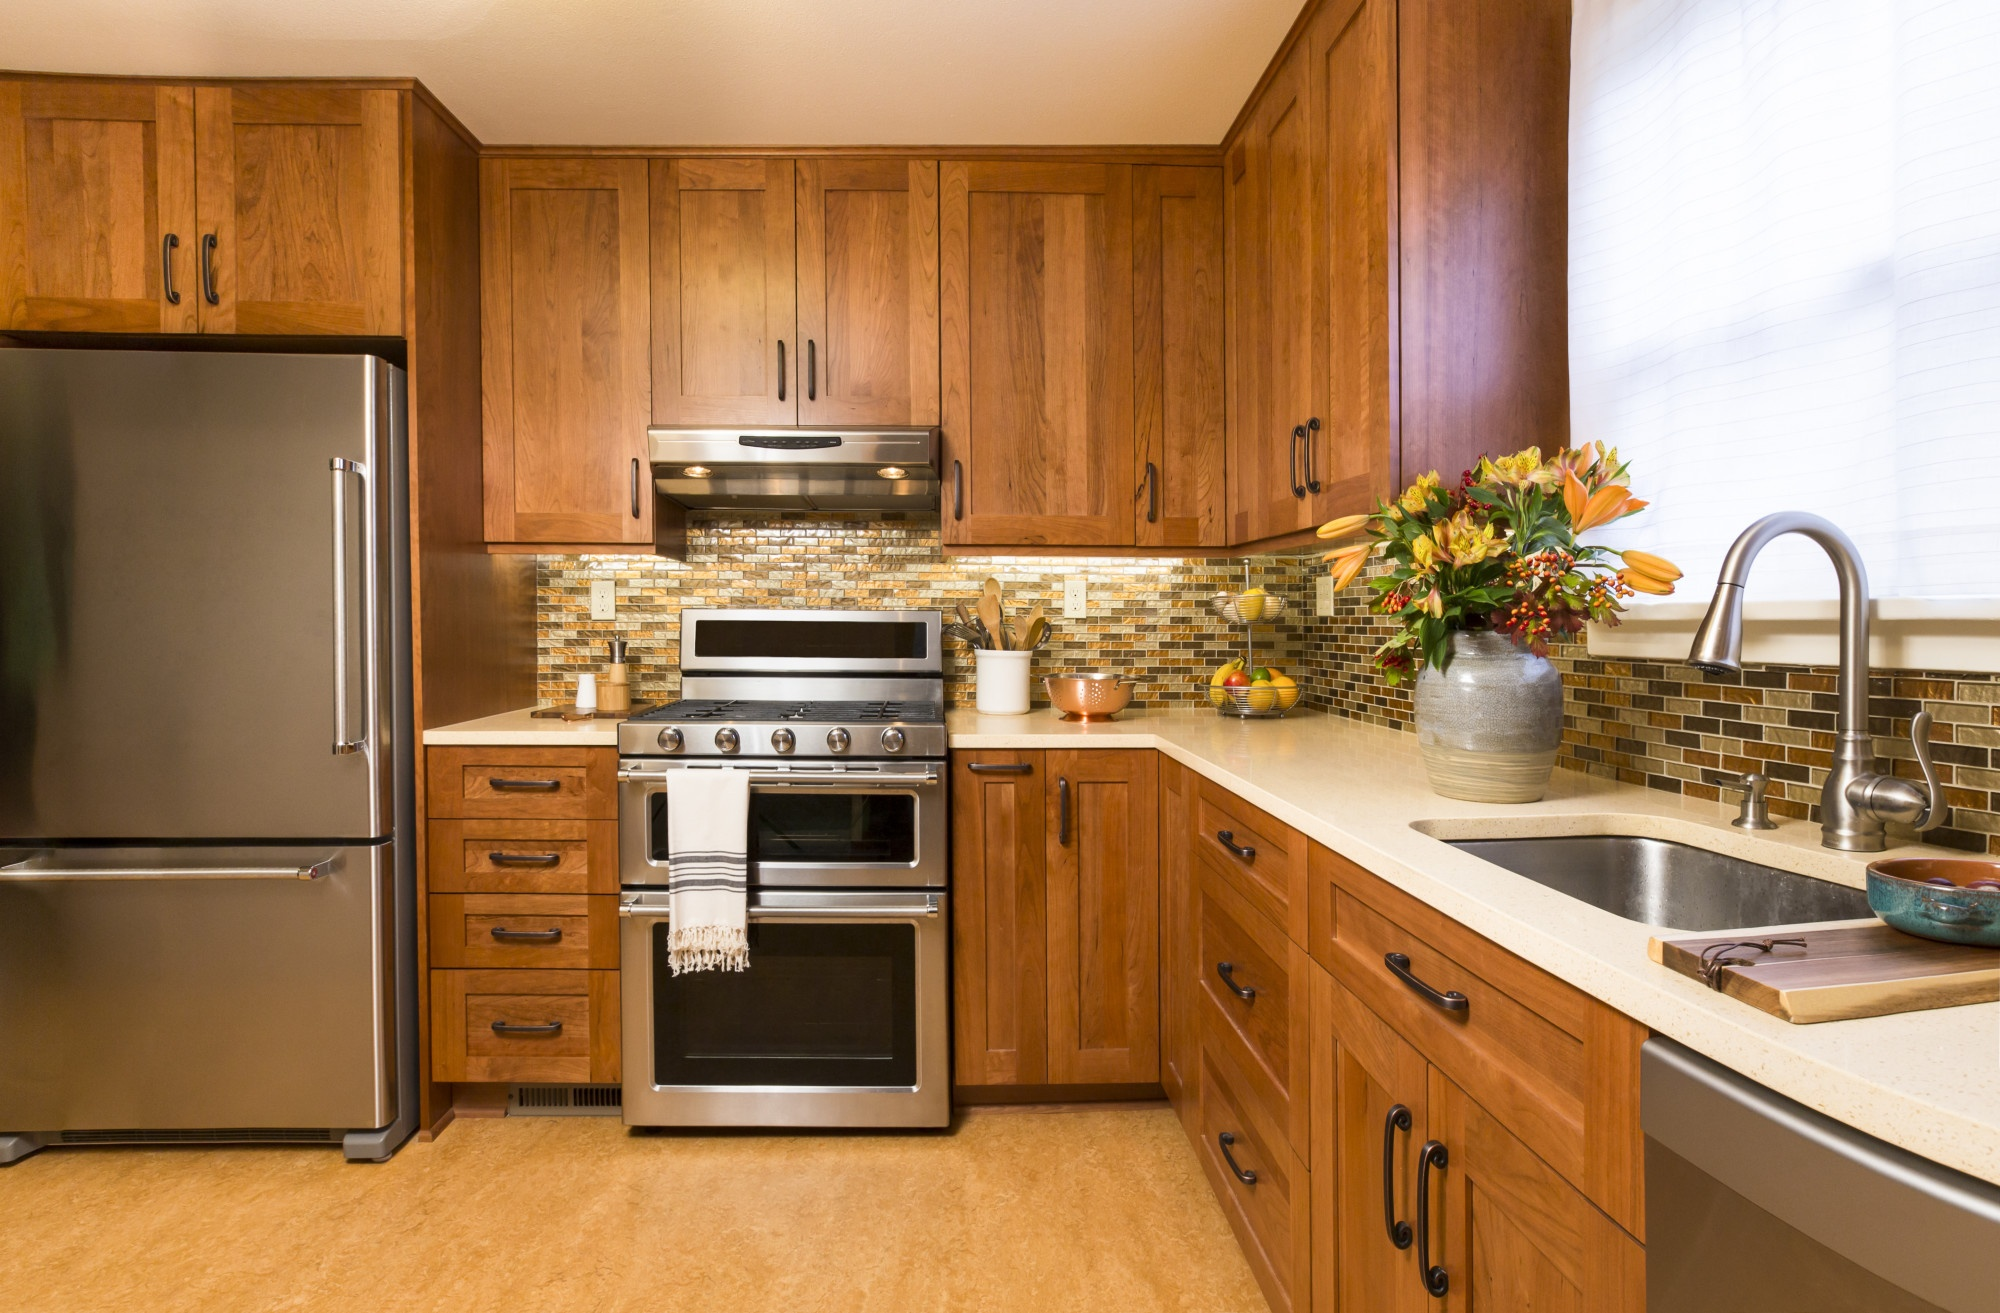 The Most Popular Types of Kitchen Cabinets: A Helpful Guide